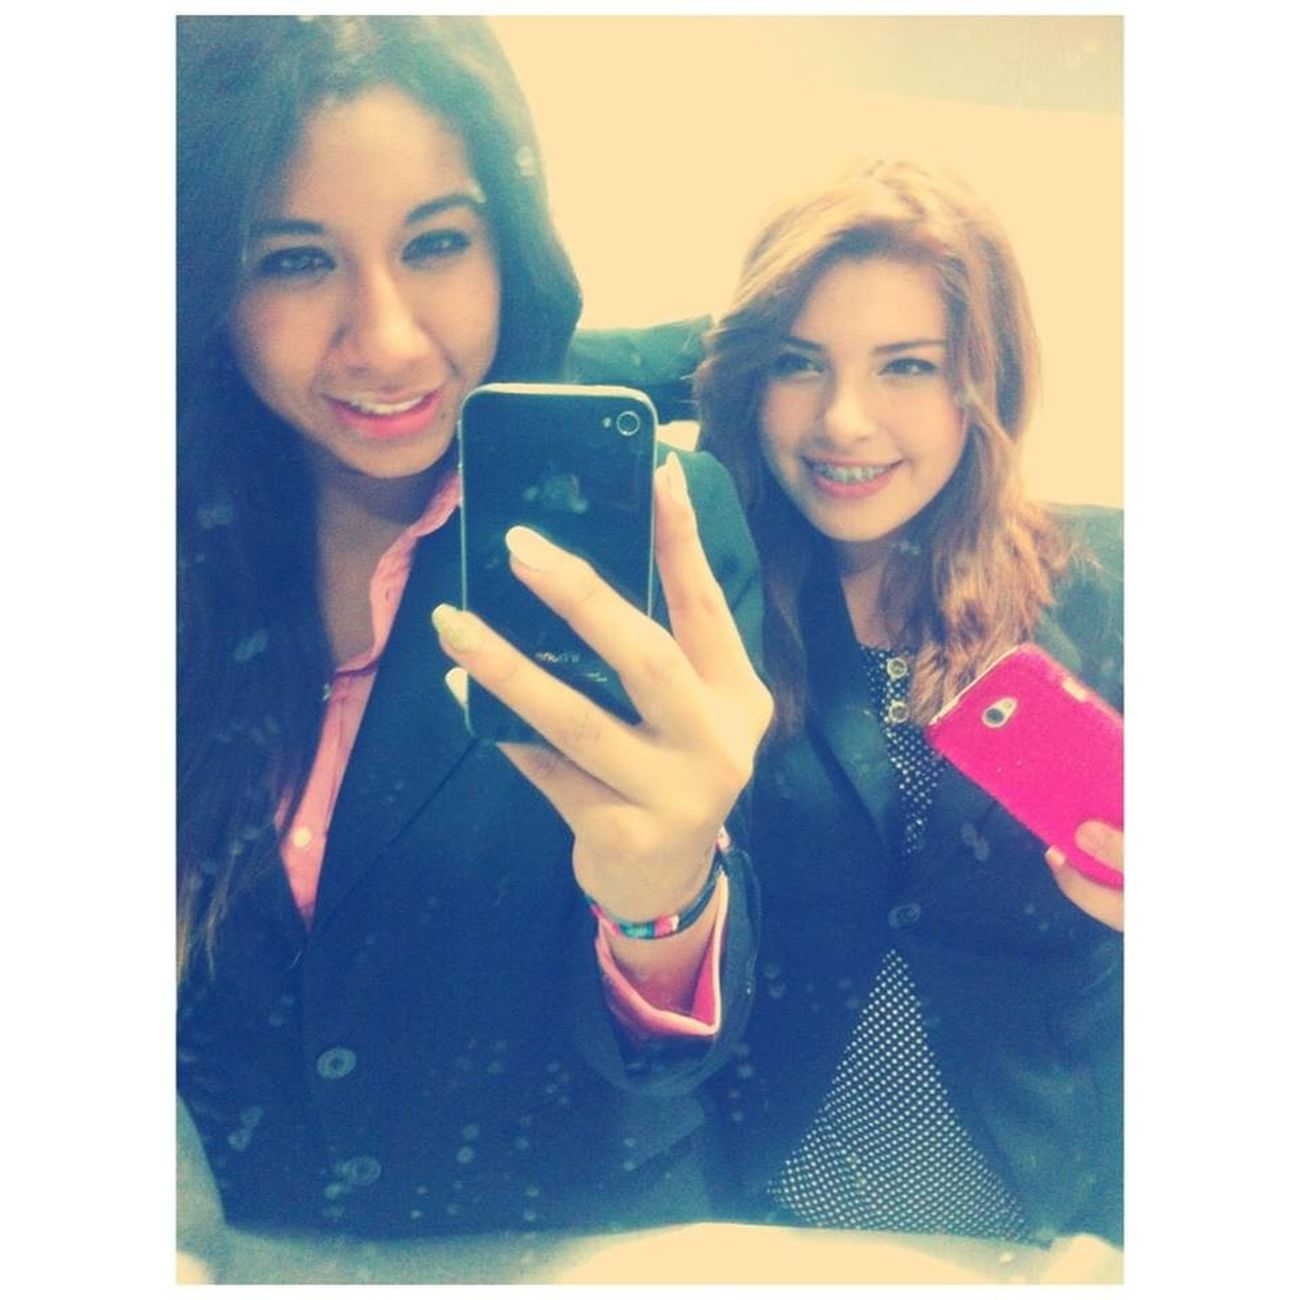 Emprendedores School Work Work Work Job School Myfavoriteperson Mybestfriend Beautiful Girls